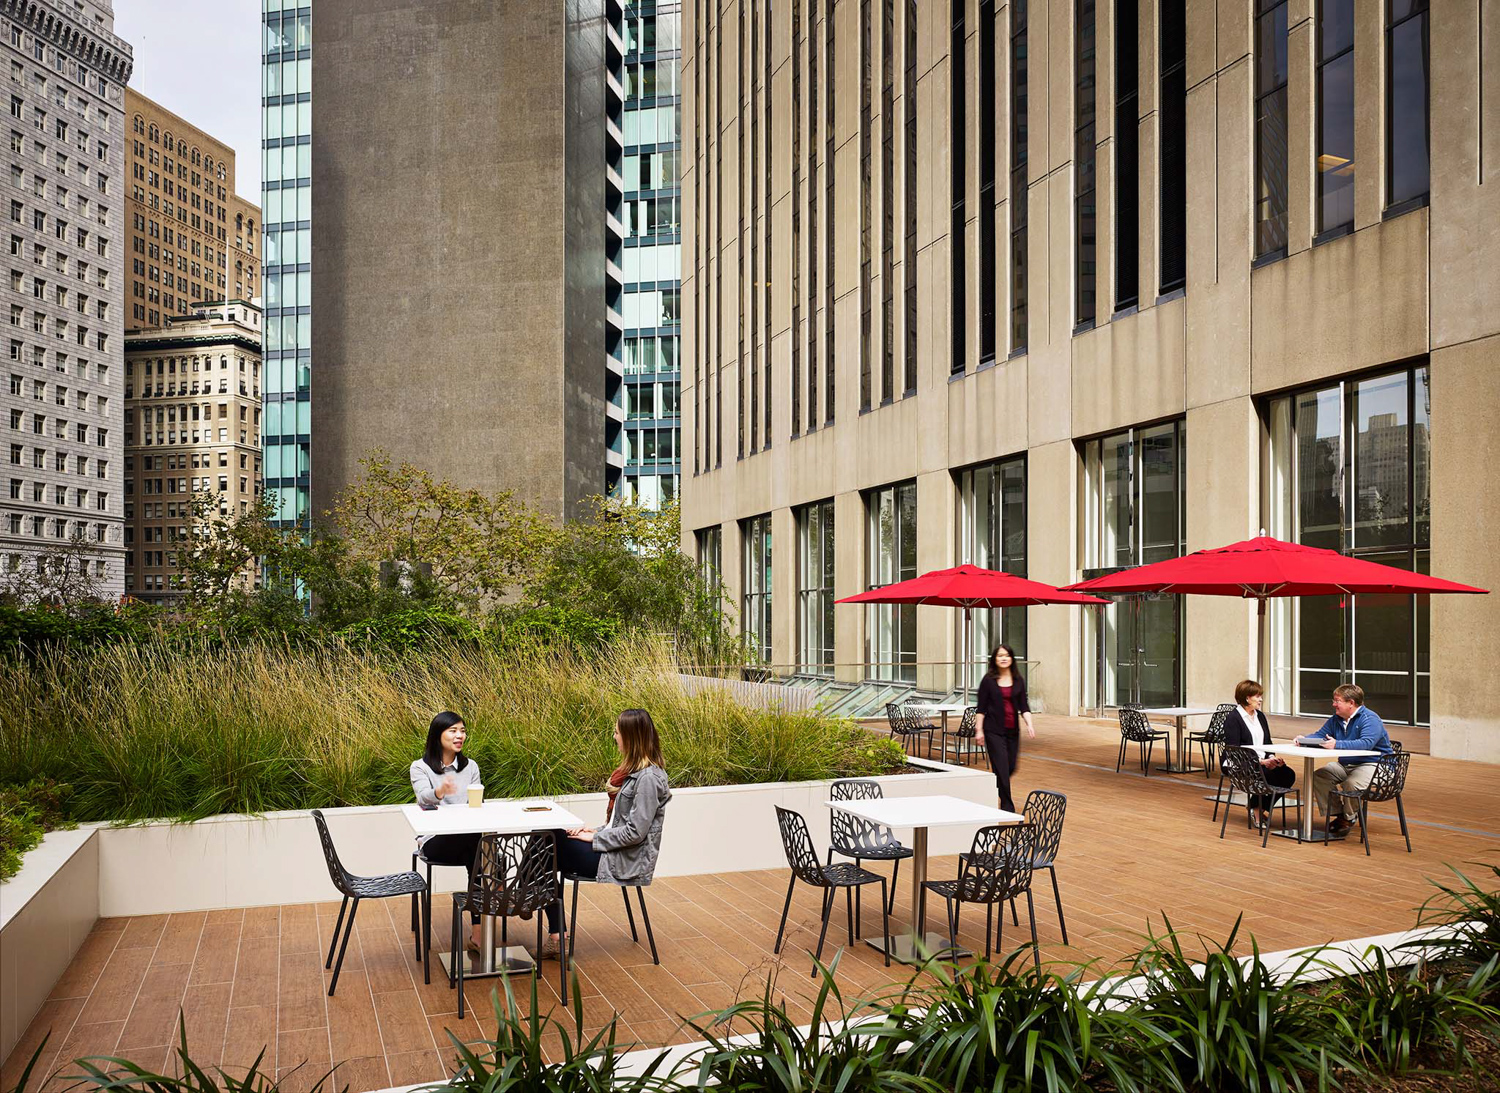 525 Market Street updated plaza upper dining terrace with private garden, image via Shed Landscape Architect